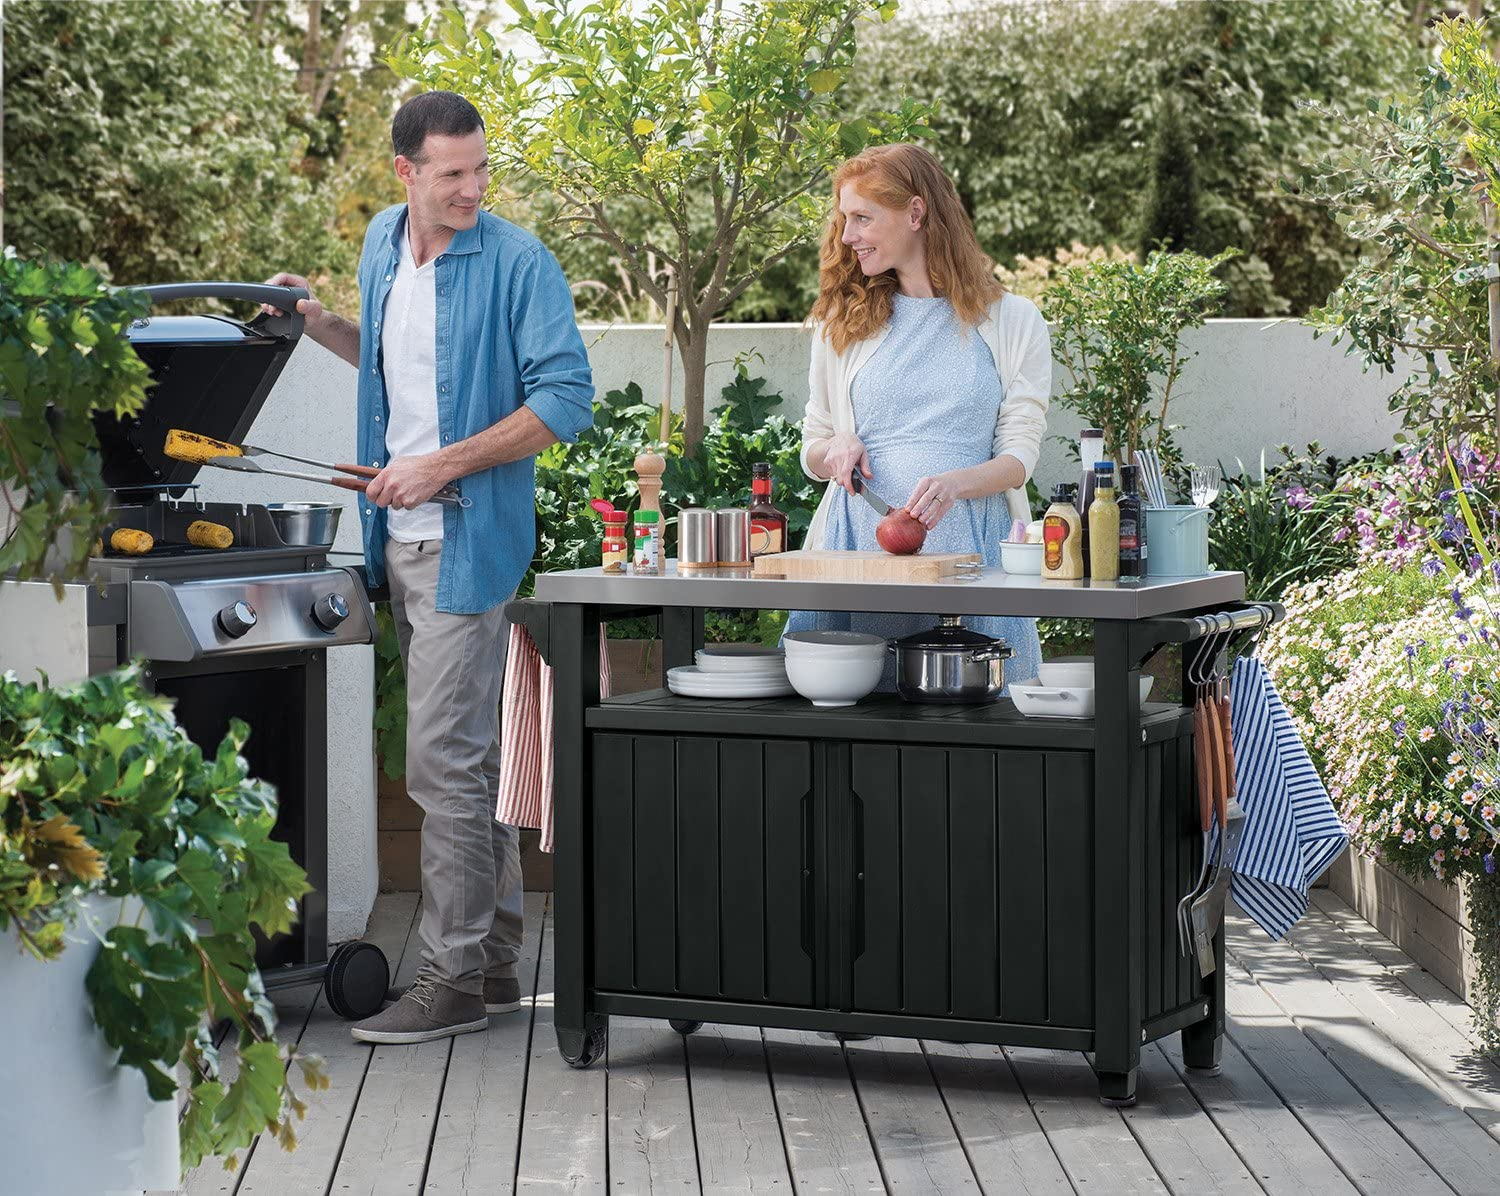 Amazon Com Keter Unity Xl Portable Outdoor Table And Storage Cabinet With Hooks For Grill Accessories Stainless Steel Top For Patio Kitchen Island Or Bar Cart Dark Grey Garden Outdoor